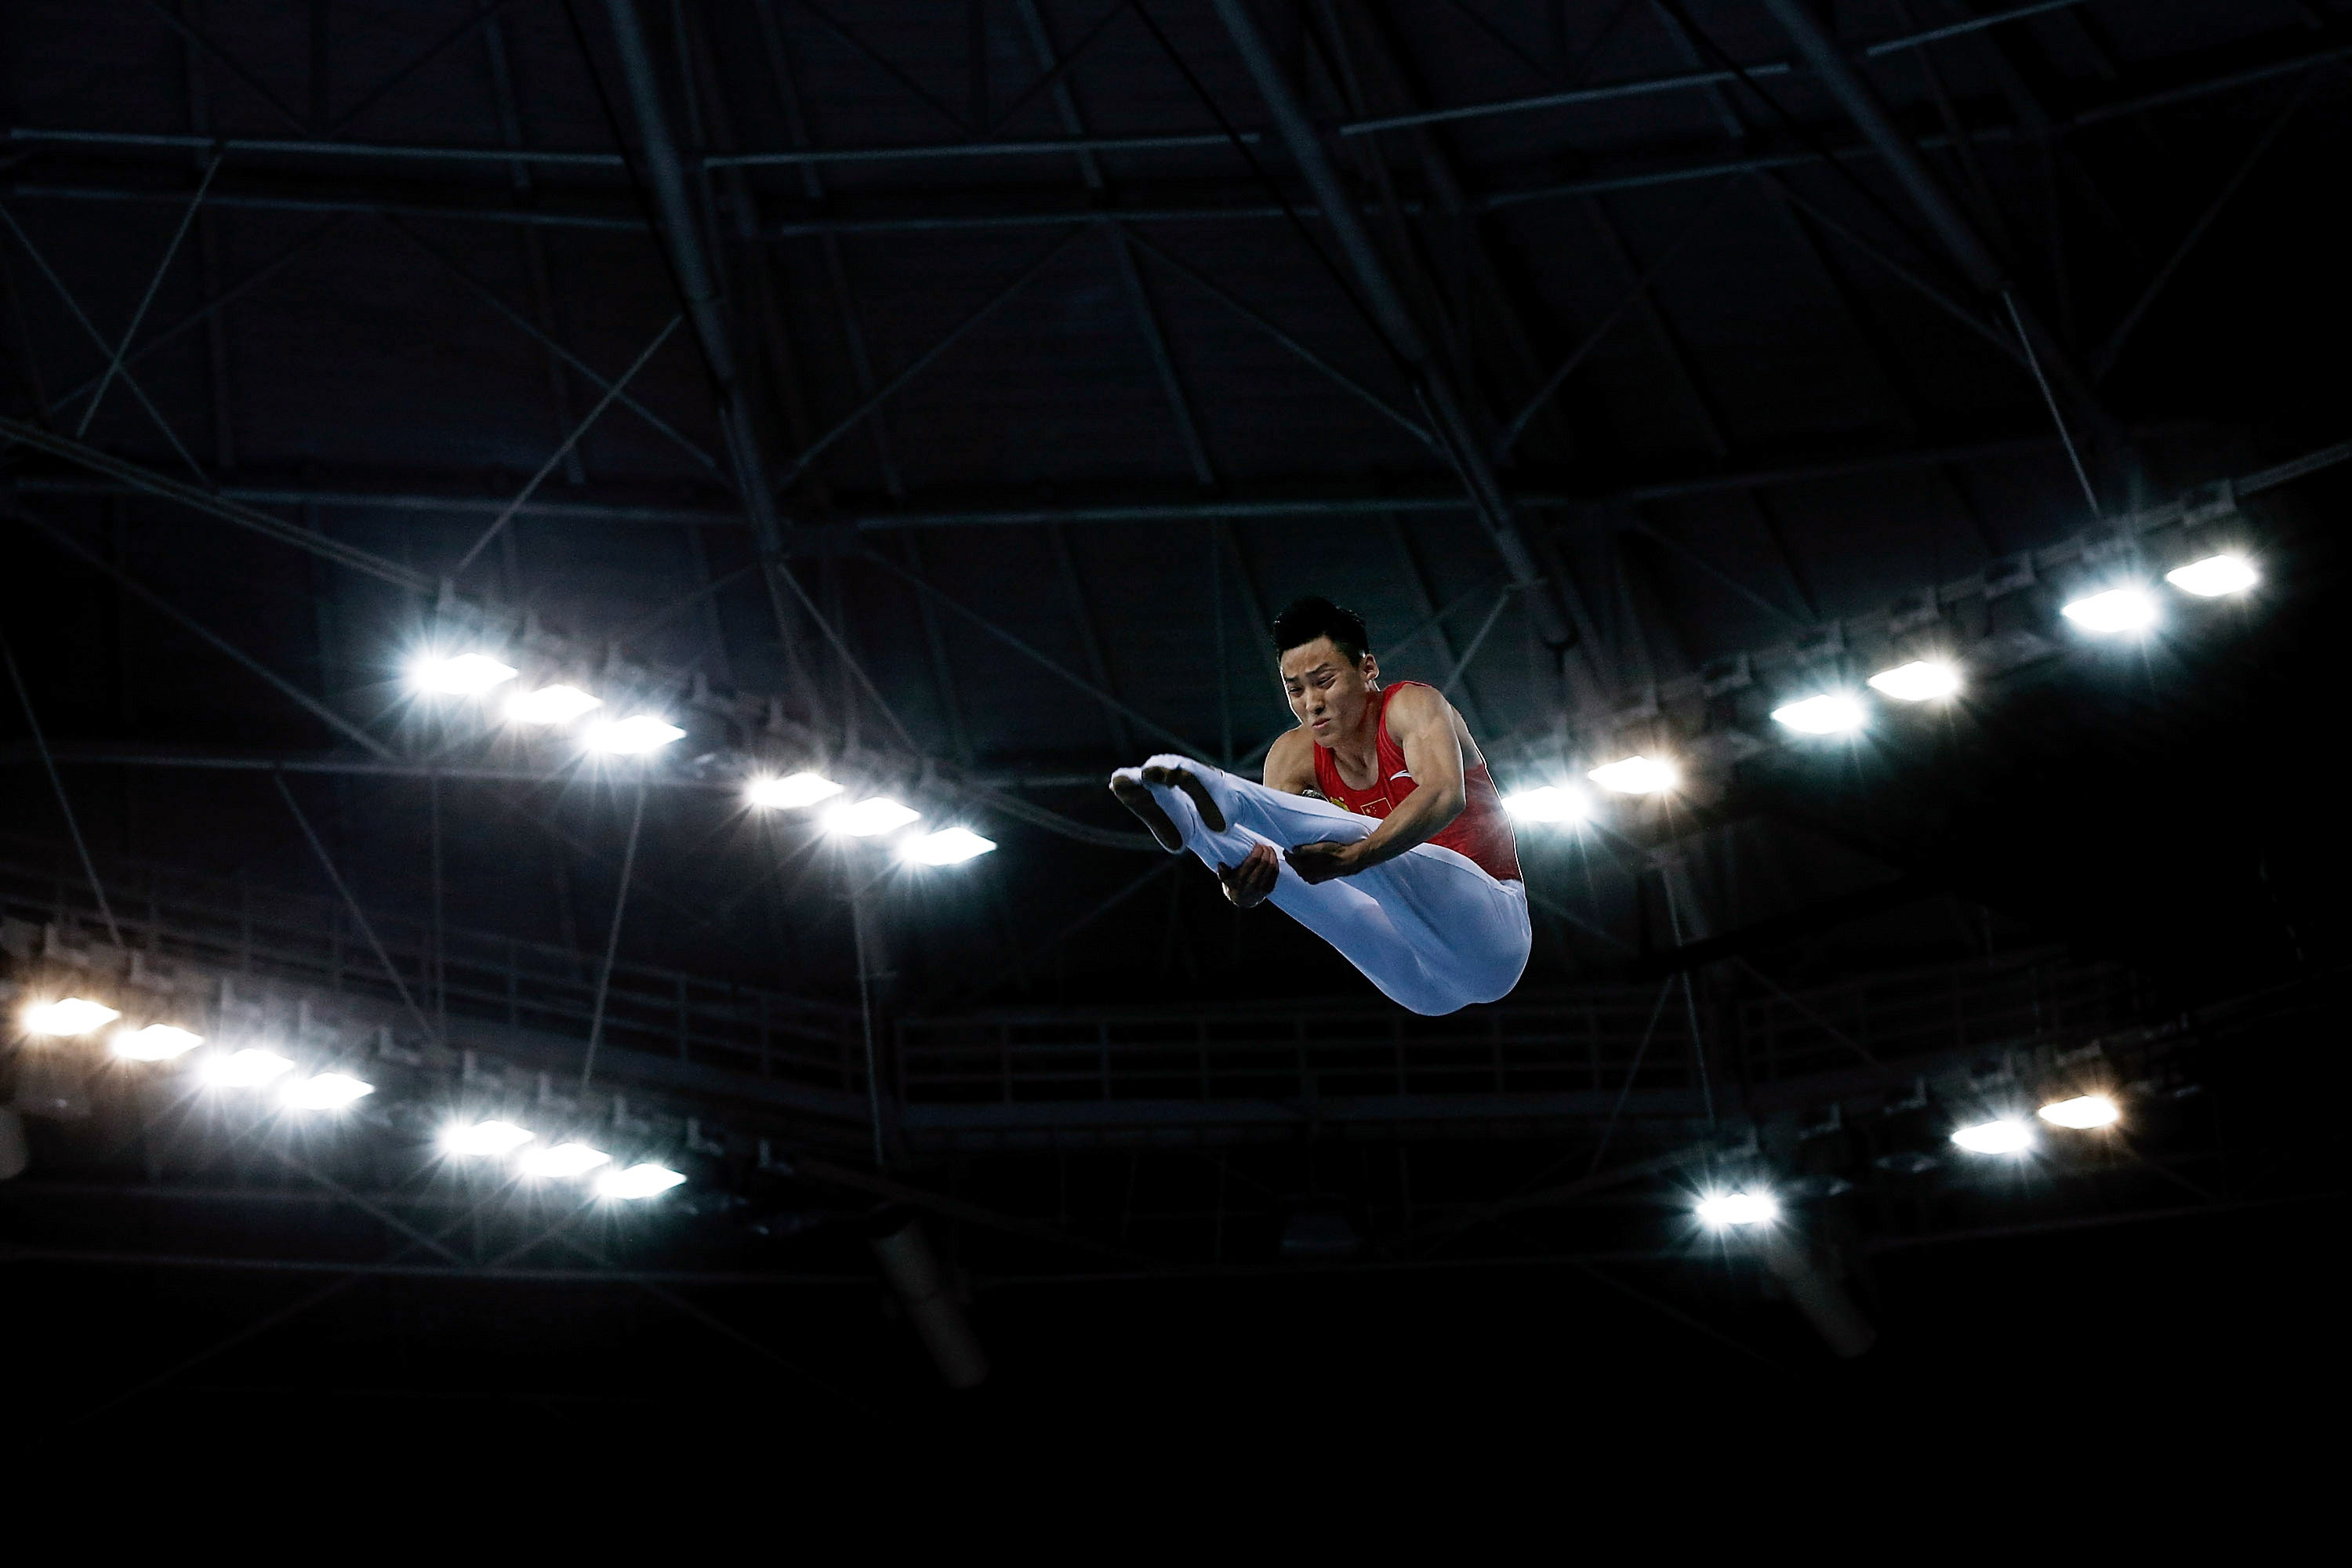 Olympic gymnastics 2016 live stream: Time, TV schedule and how to watch men's trampoline online